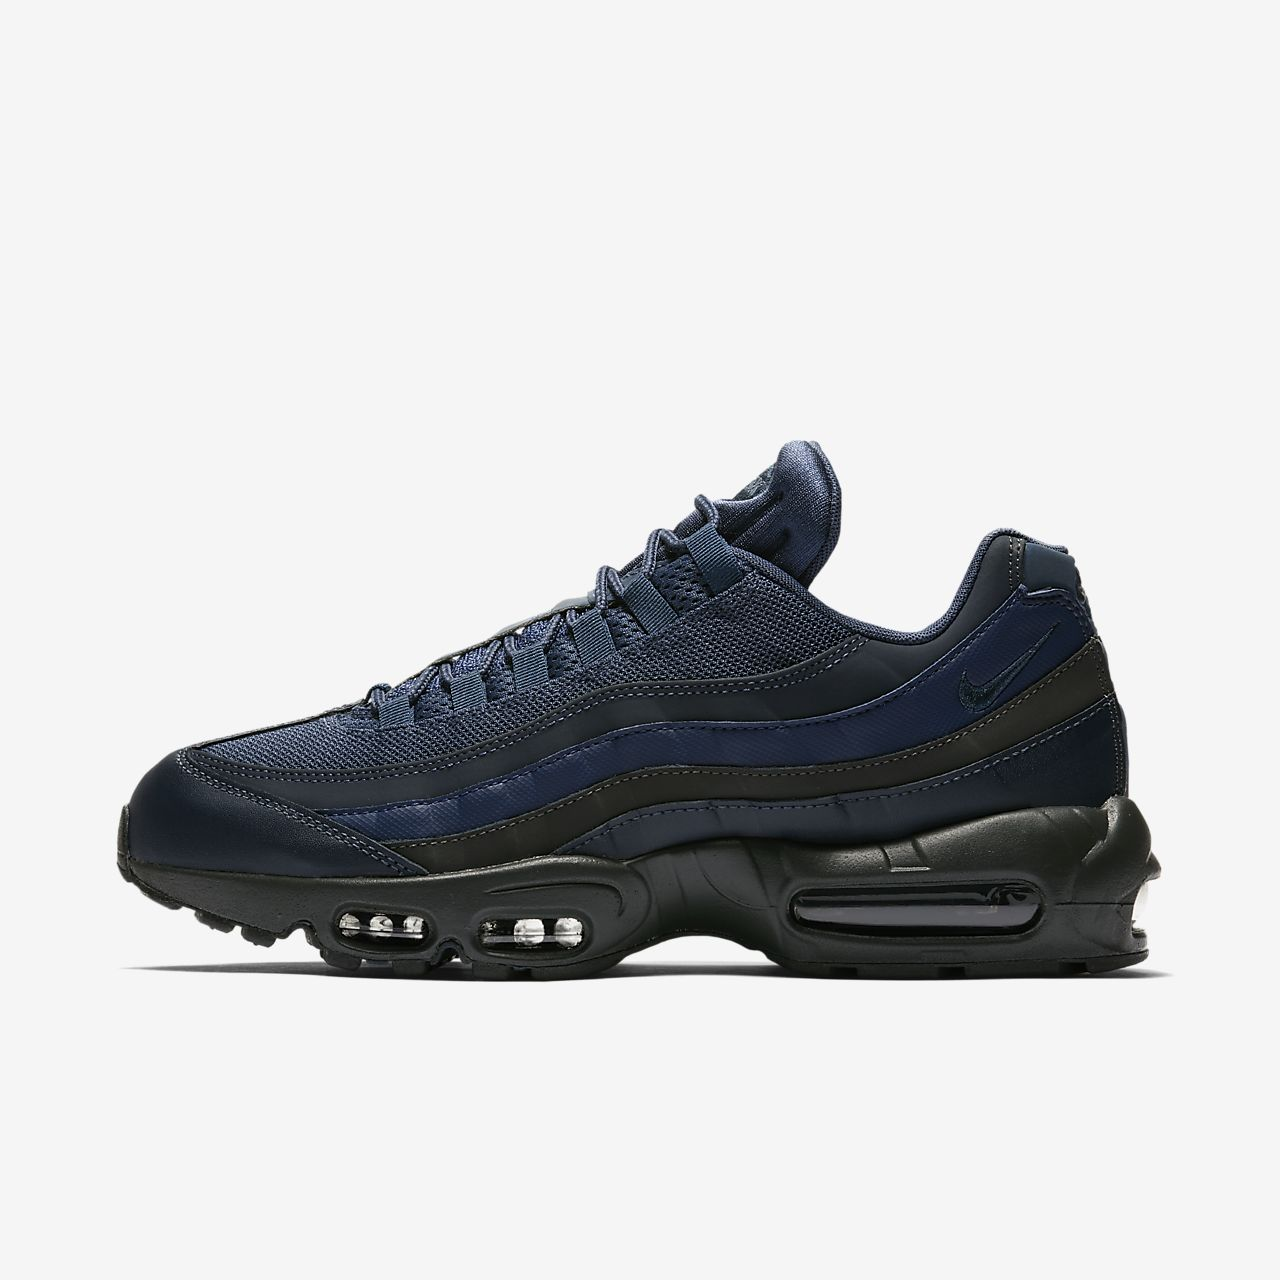 official photos 2408d b4206 Nike Air Max 95 Essential